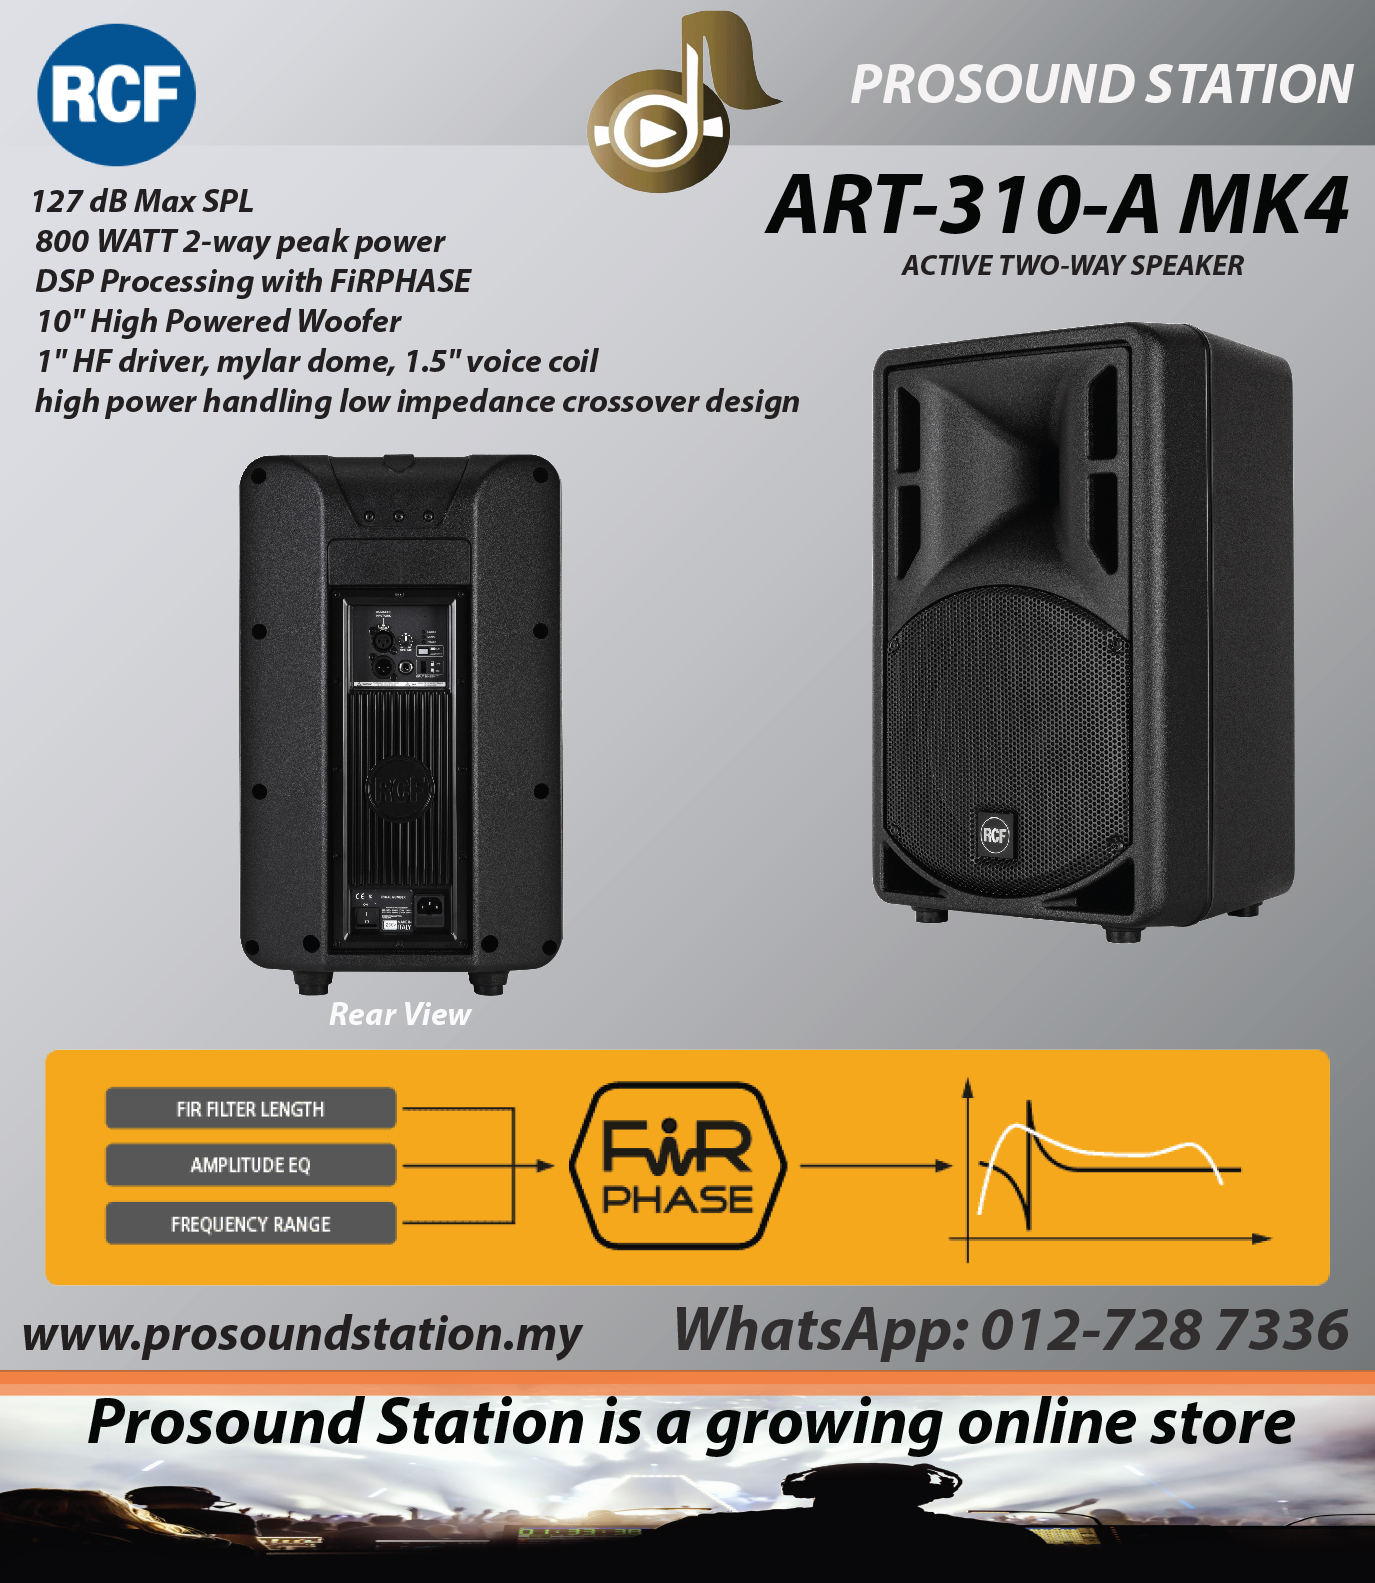 RCF ART 310-A MK4 ACTIVE TWO-WAY SPEAKER